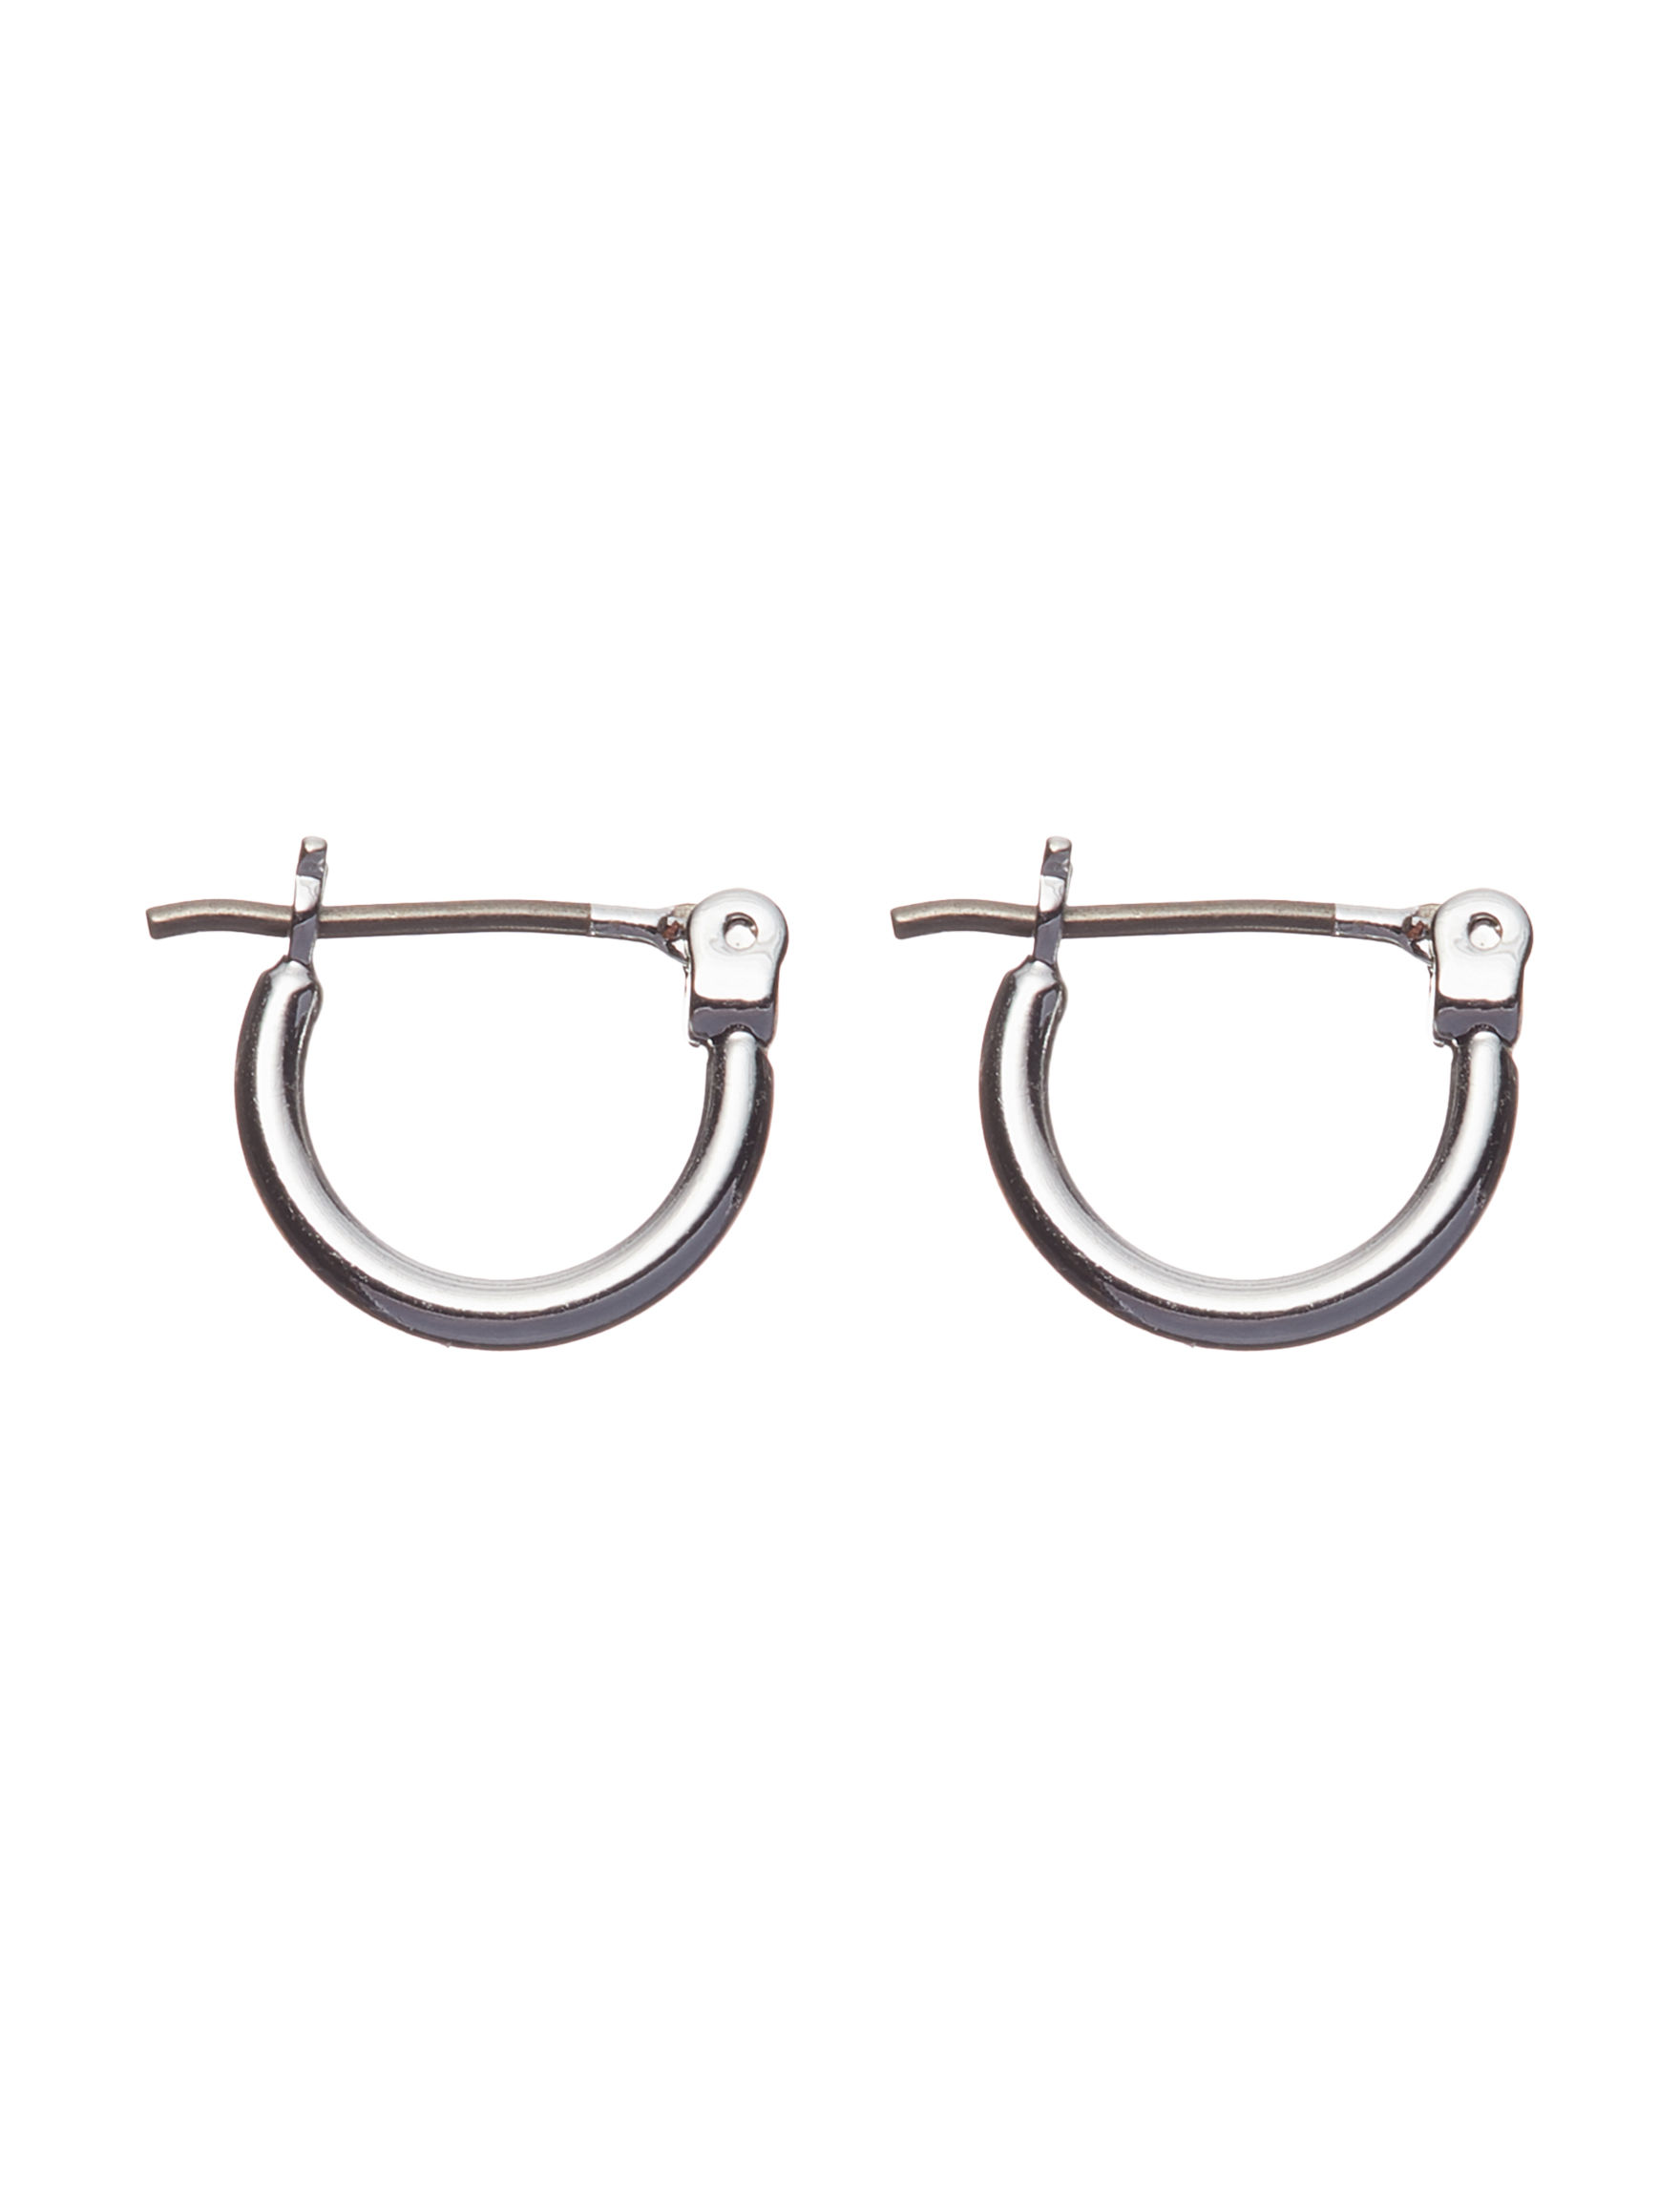 Napier Silver Hoops Earrings Fashion Jewelry